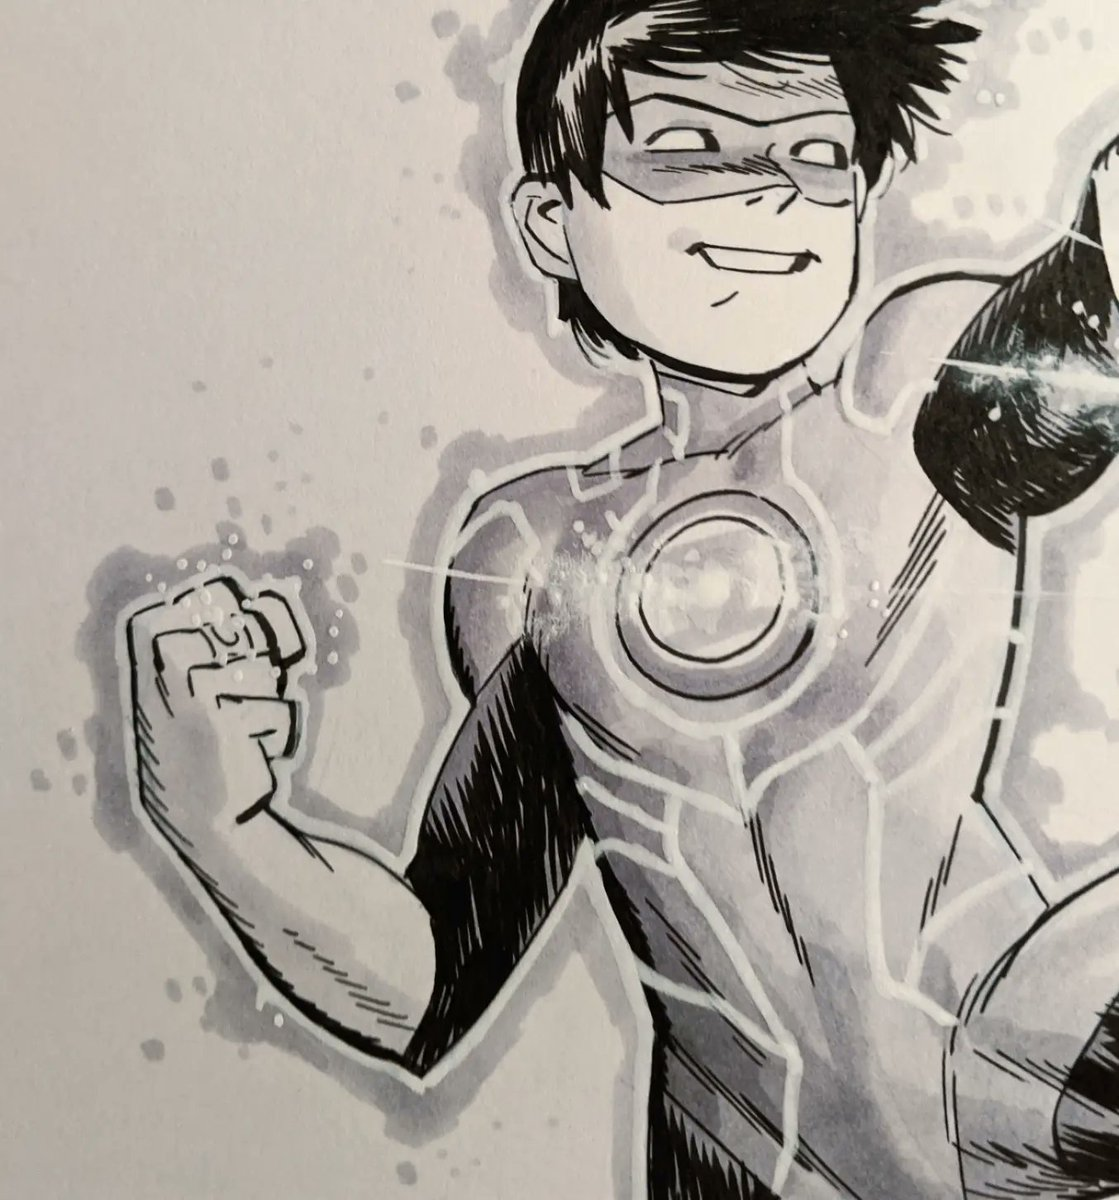 Tai Pham Green Lantern commission complete. Thanks to @arjayemmm for the request, had a ton of fun with this one. More to come as well!